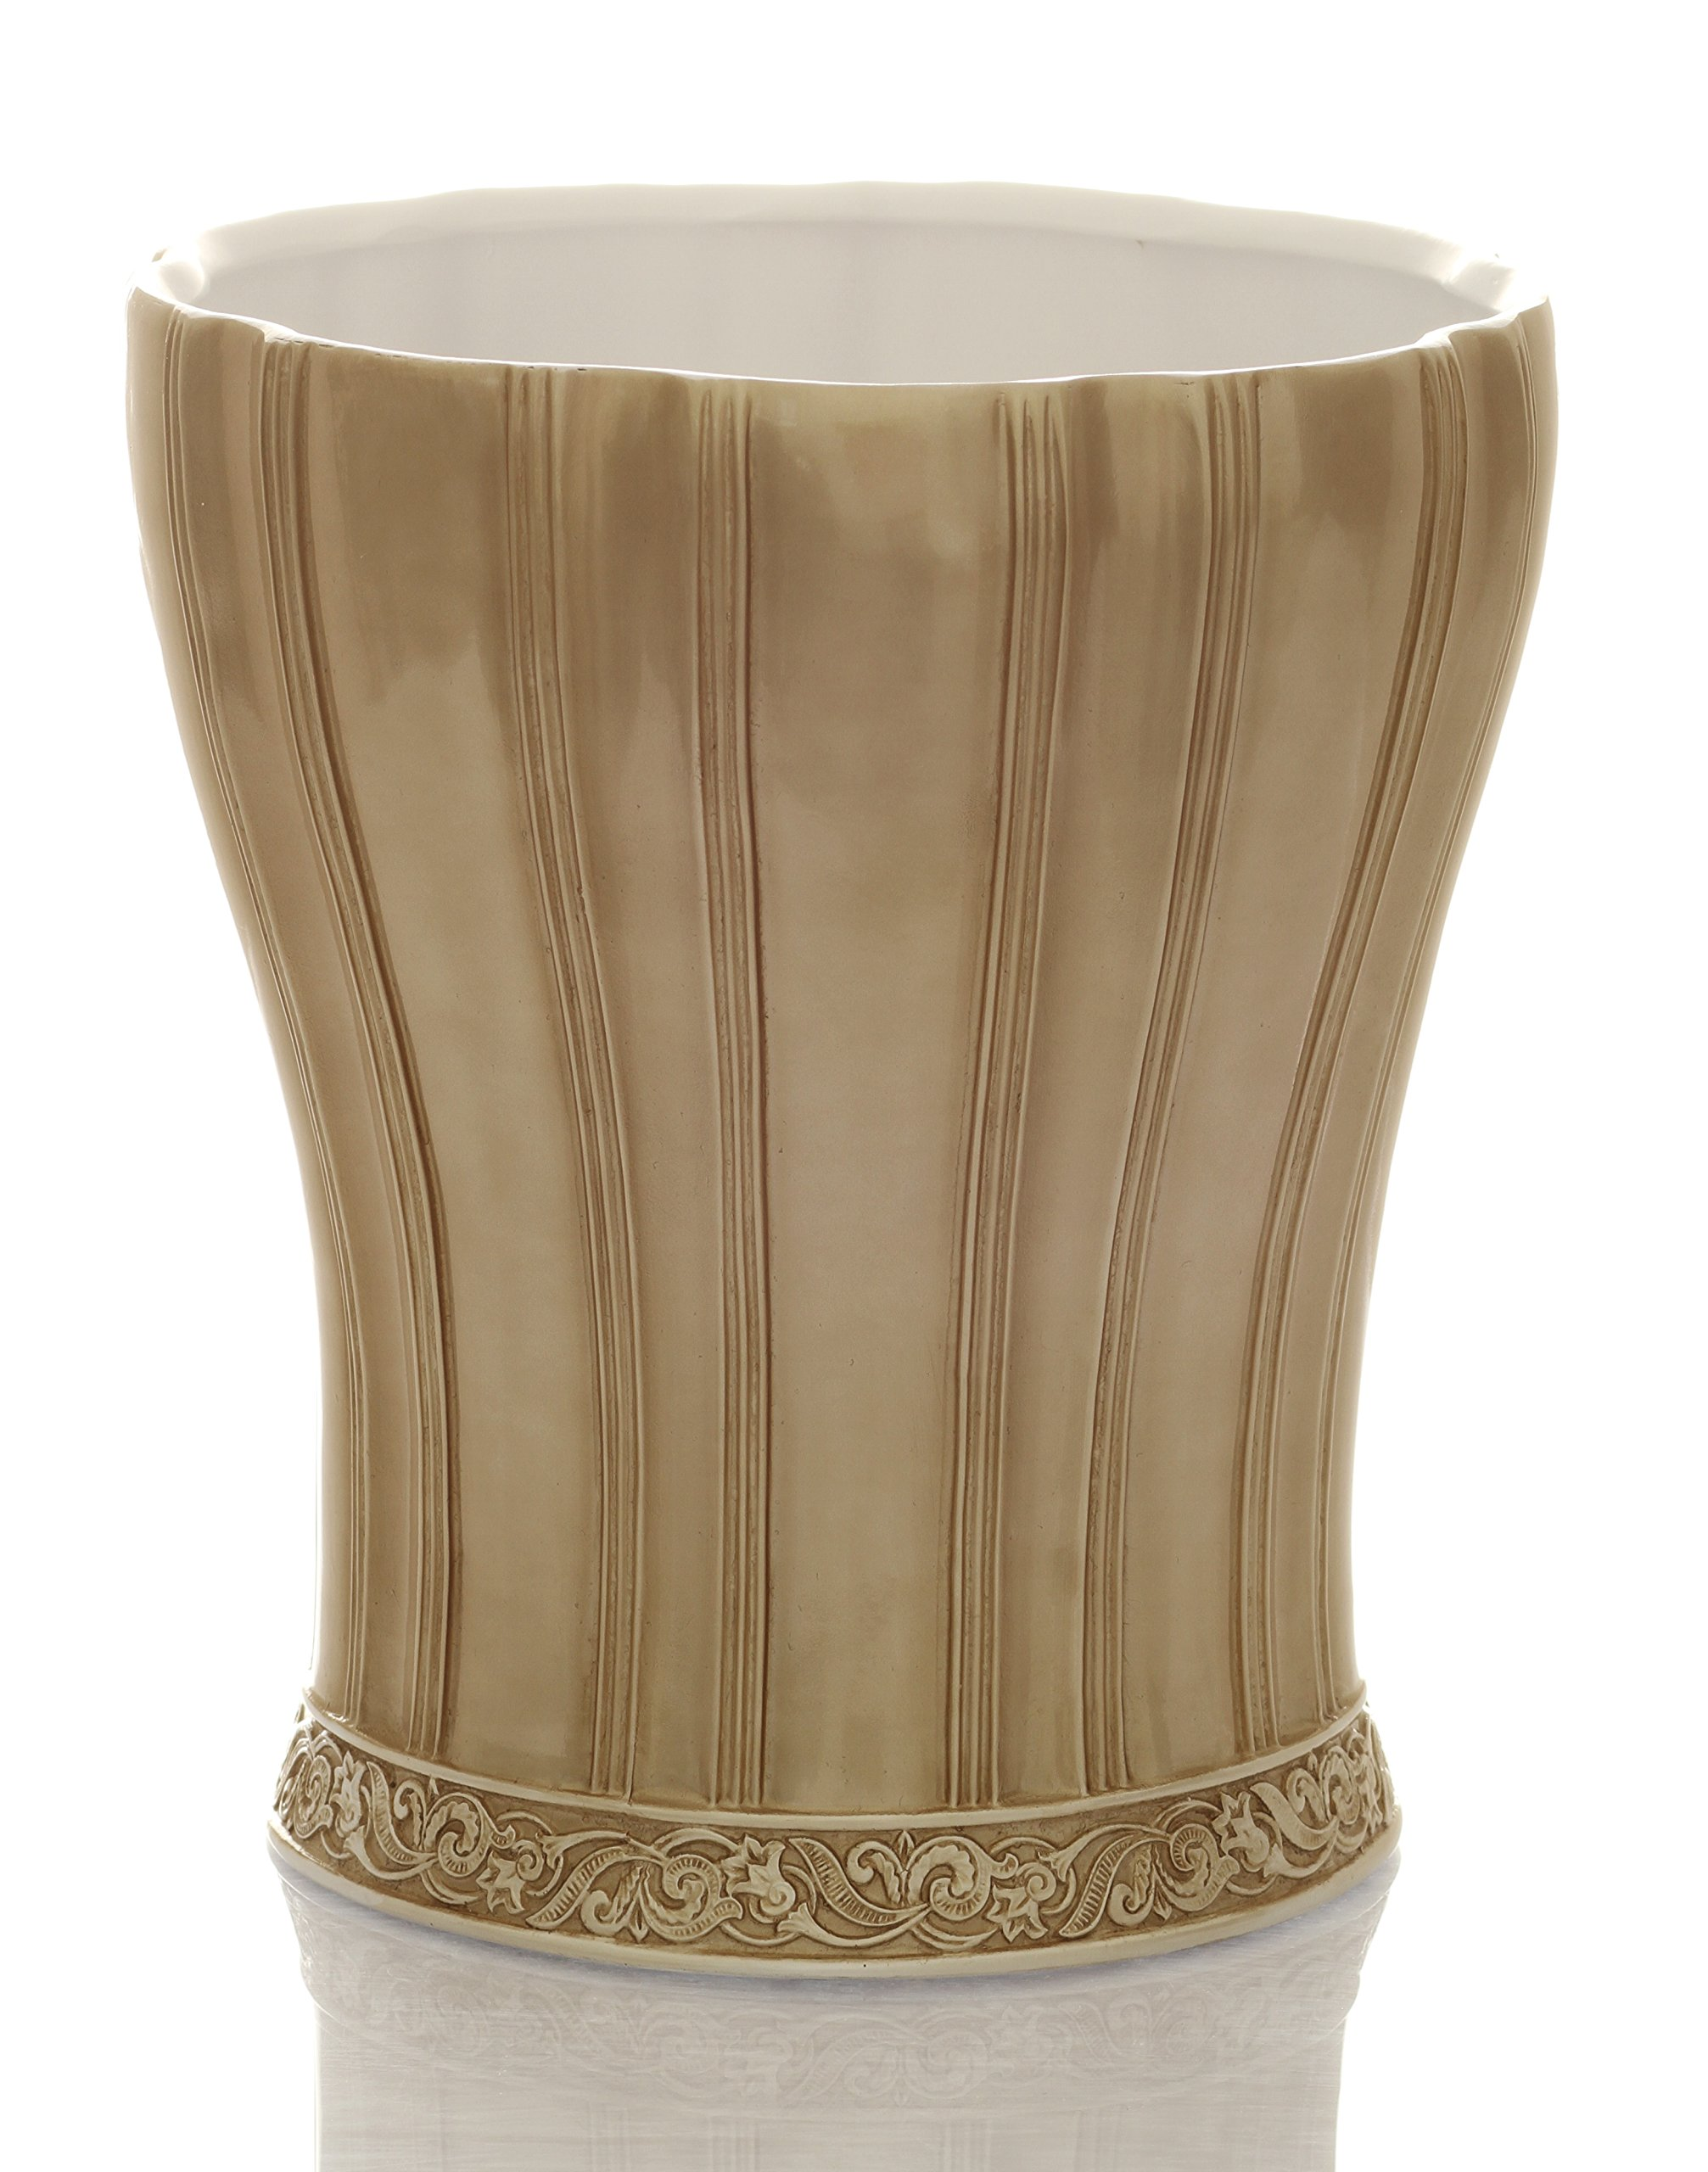 Ivory decorative waste bin bathroom trash can decorative wastebasket durable resin waste paper baskets